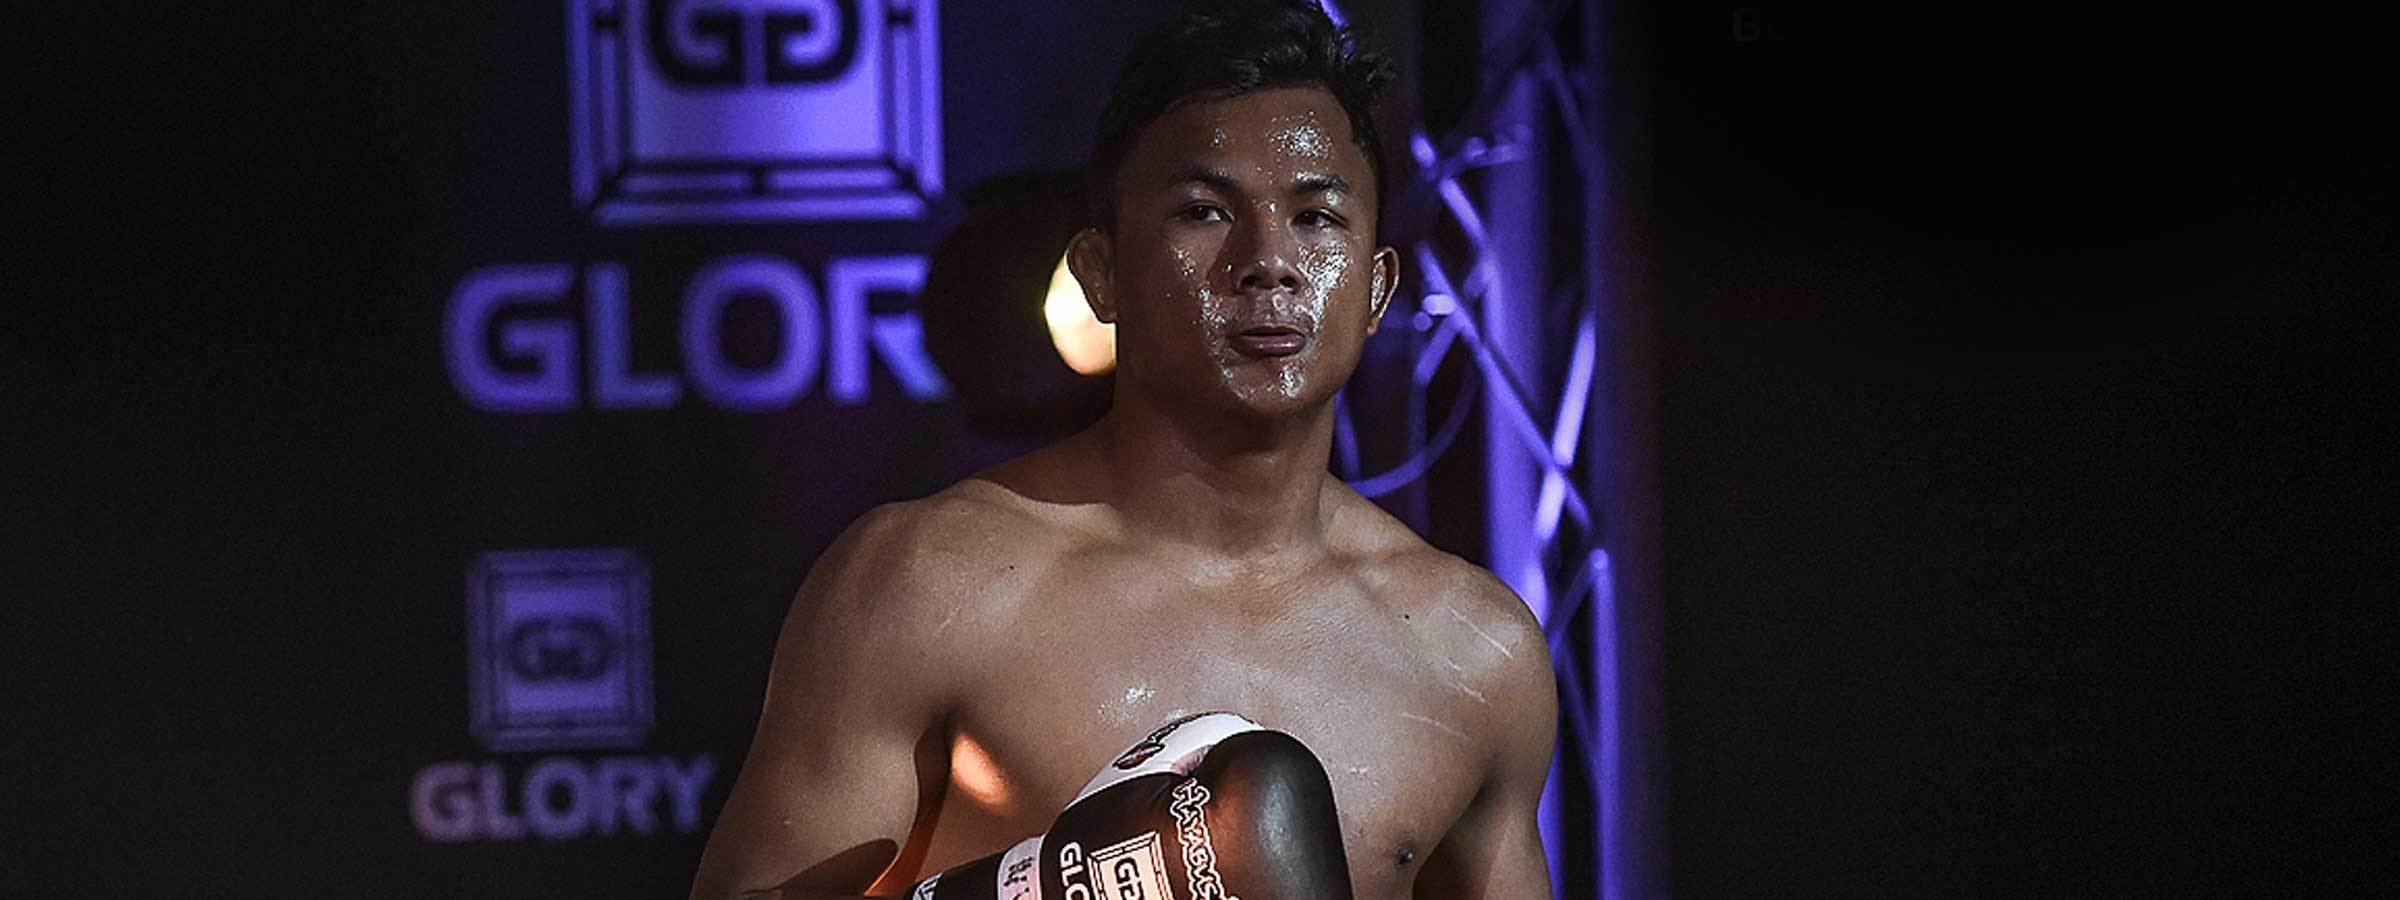 Thongchai The Thai Terminator Sitsongpeenong